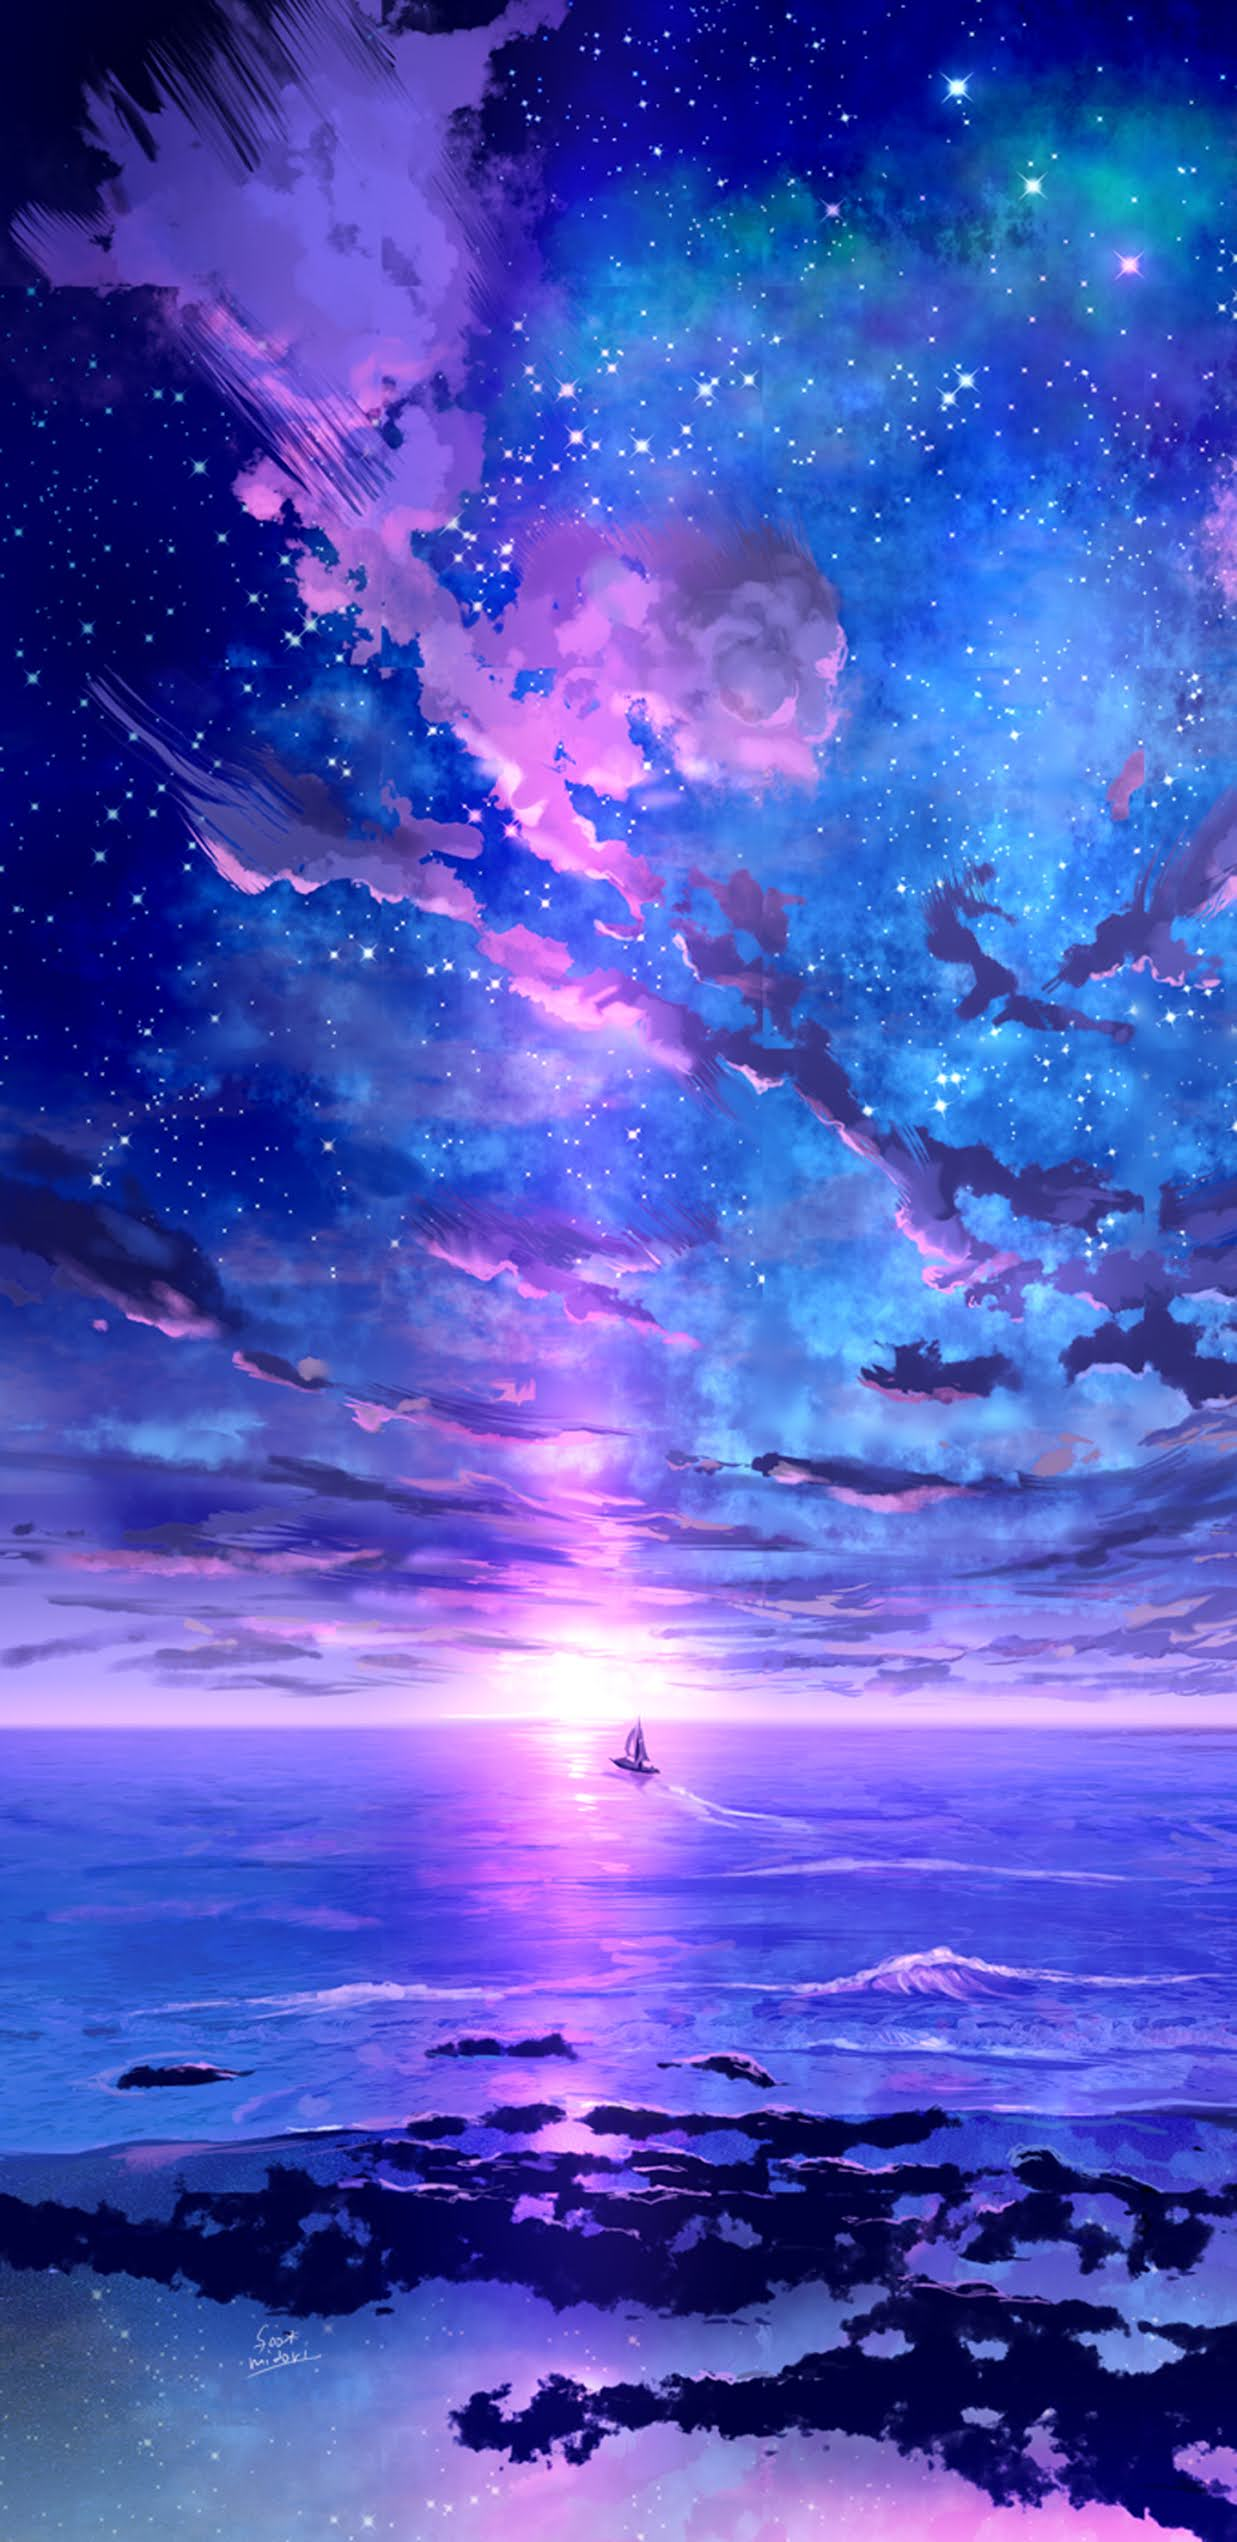 Starry sky wallpaper